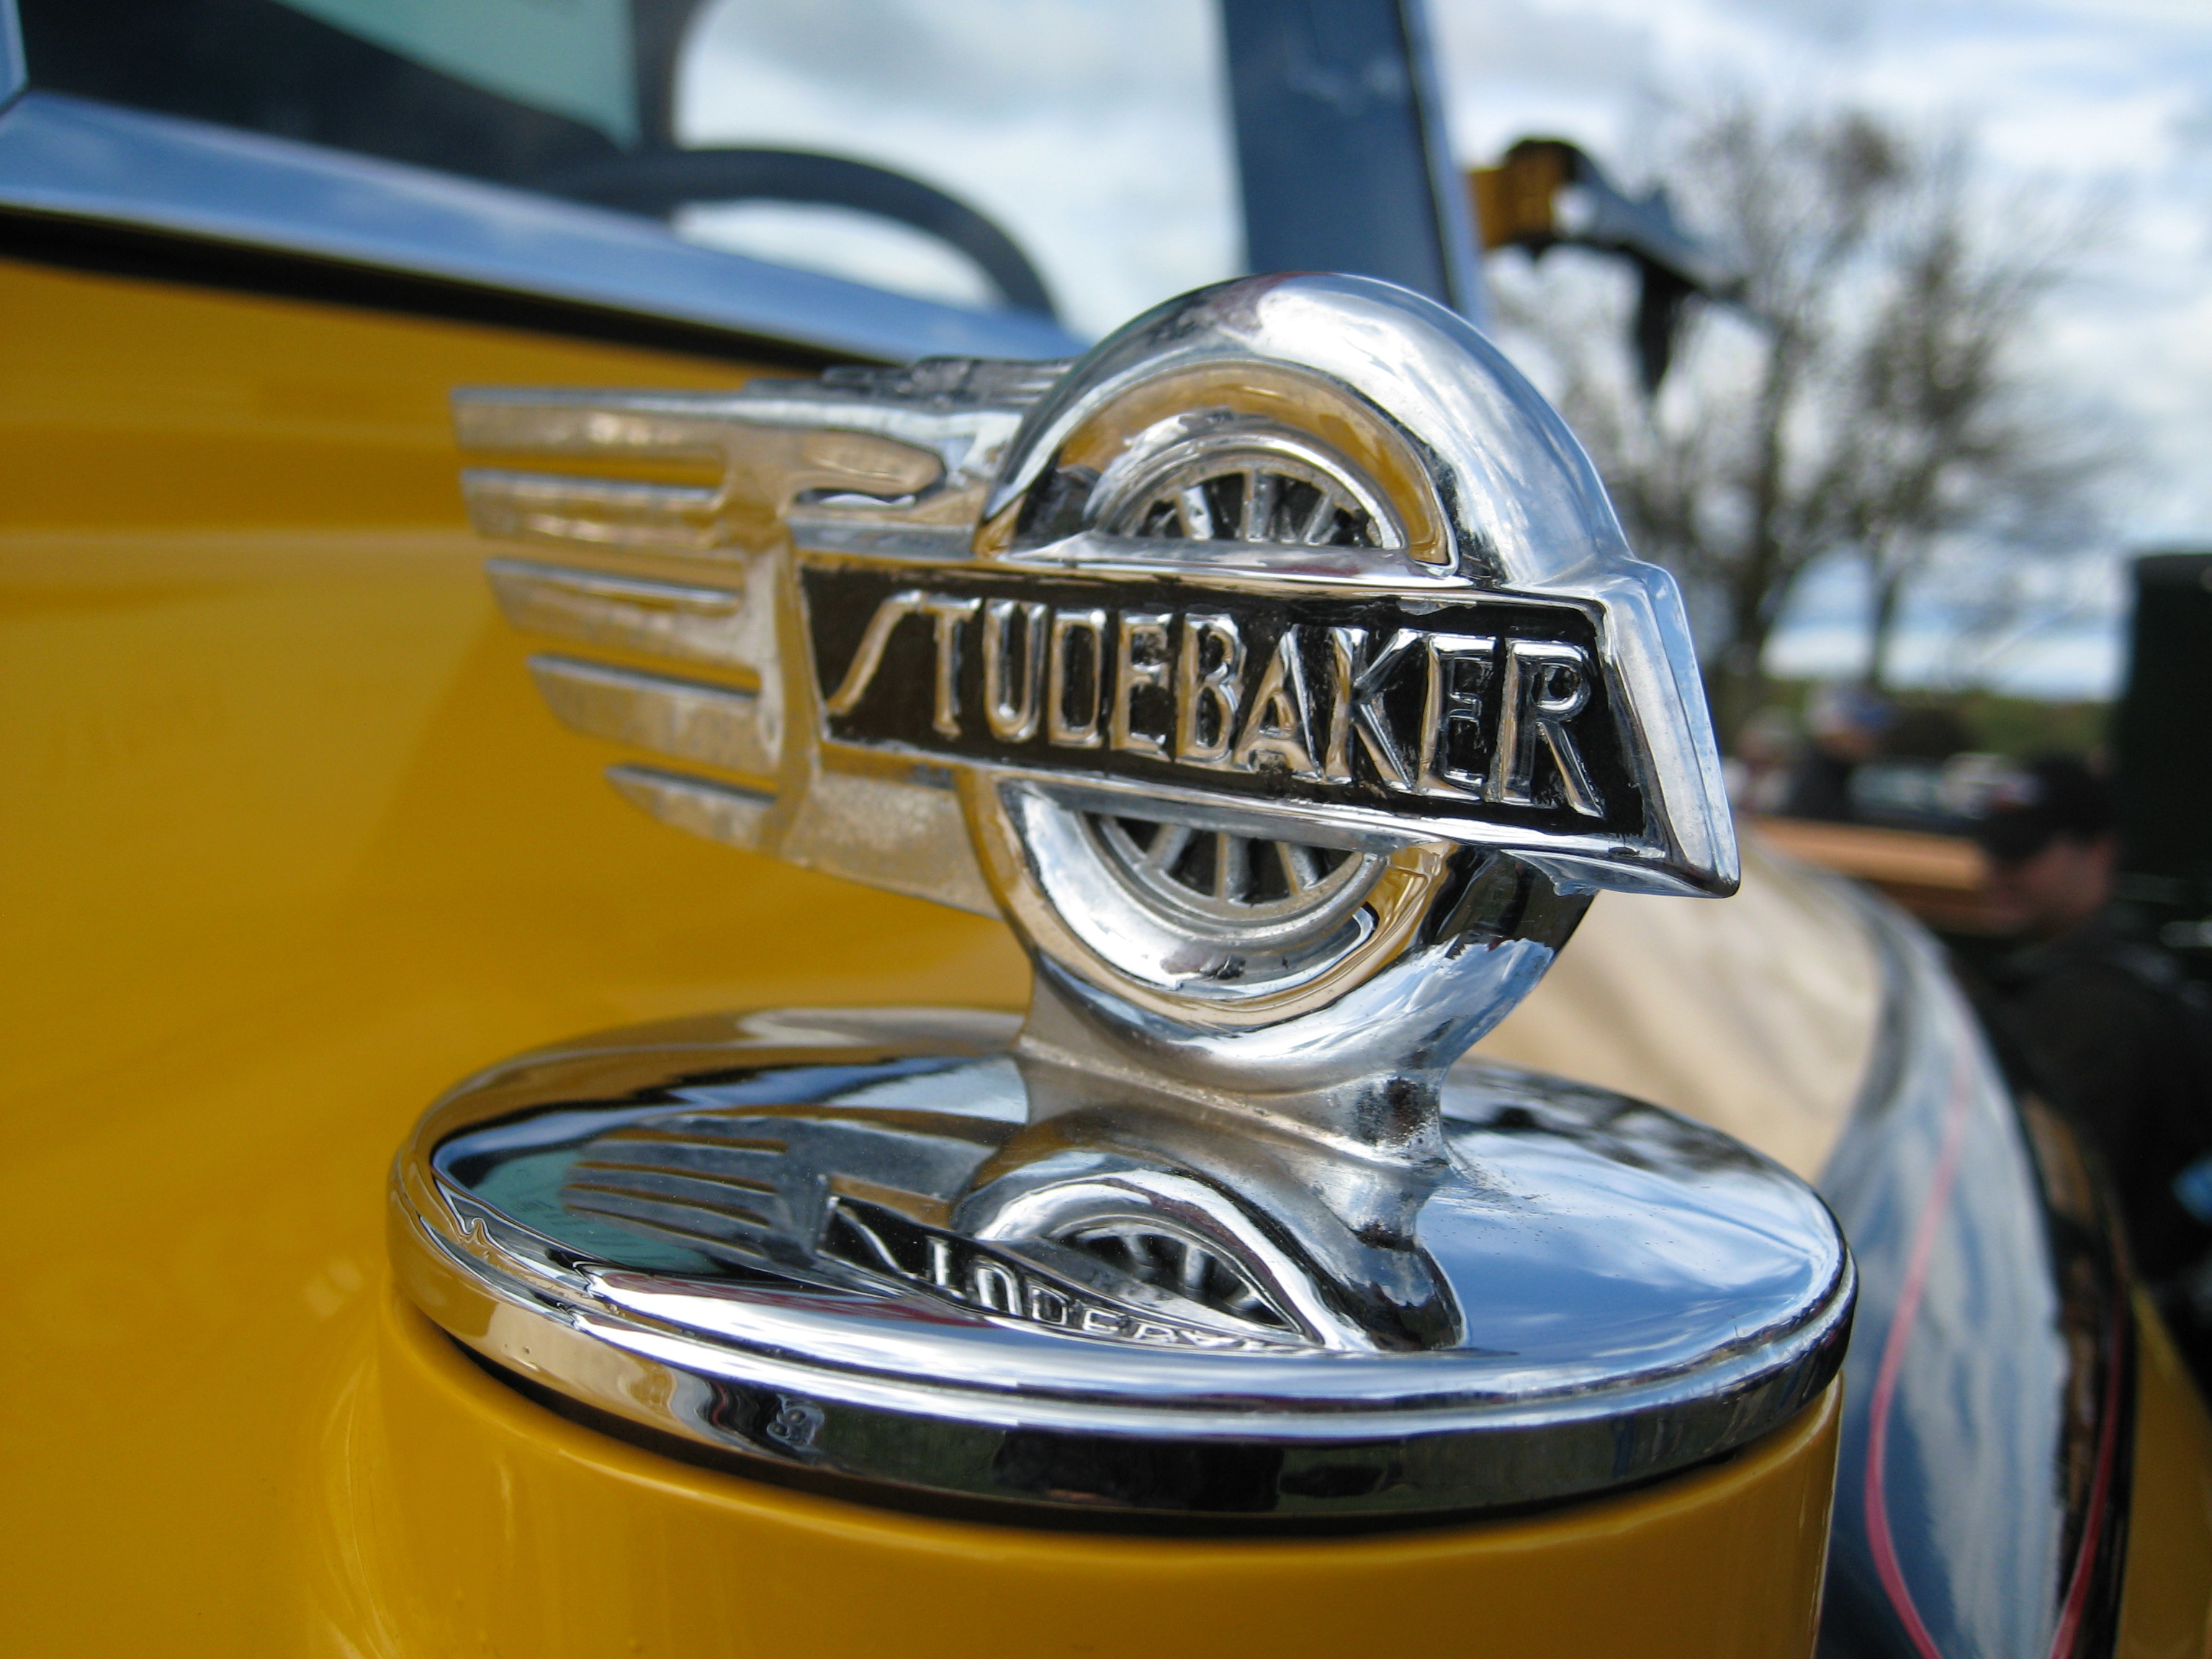 Amazing Hood Ornament Pictures & Backgrounds